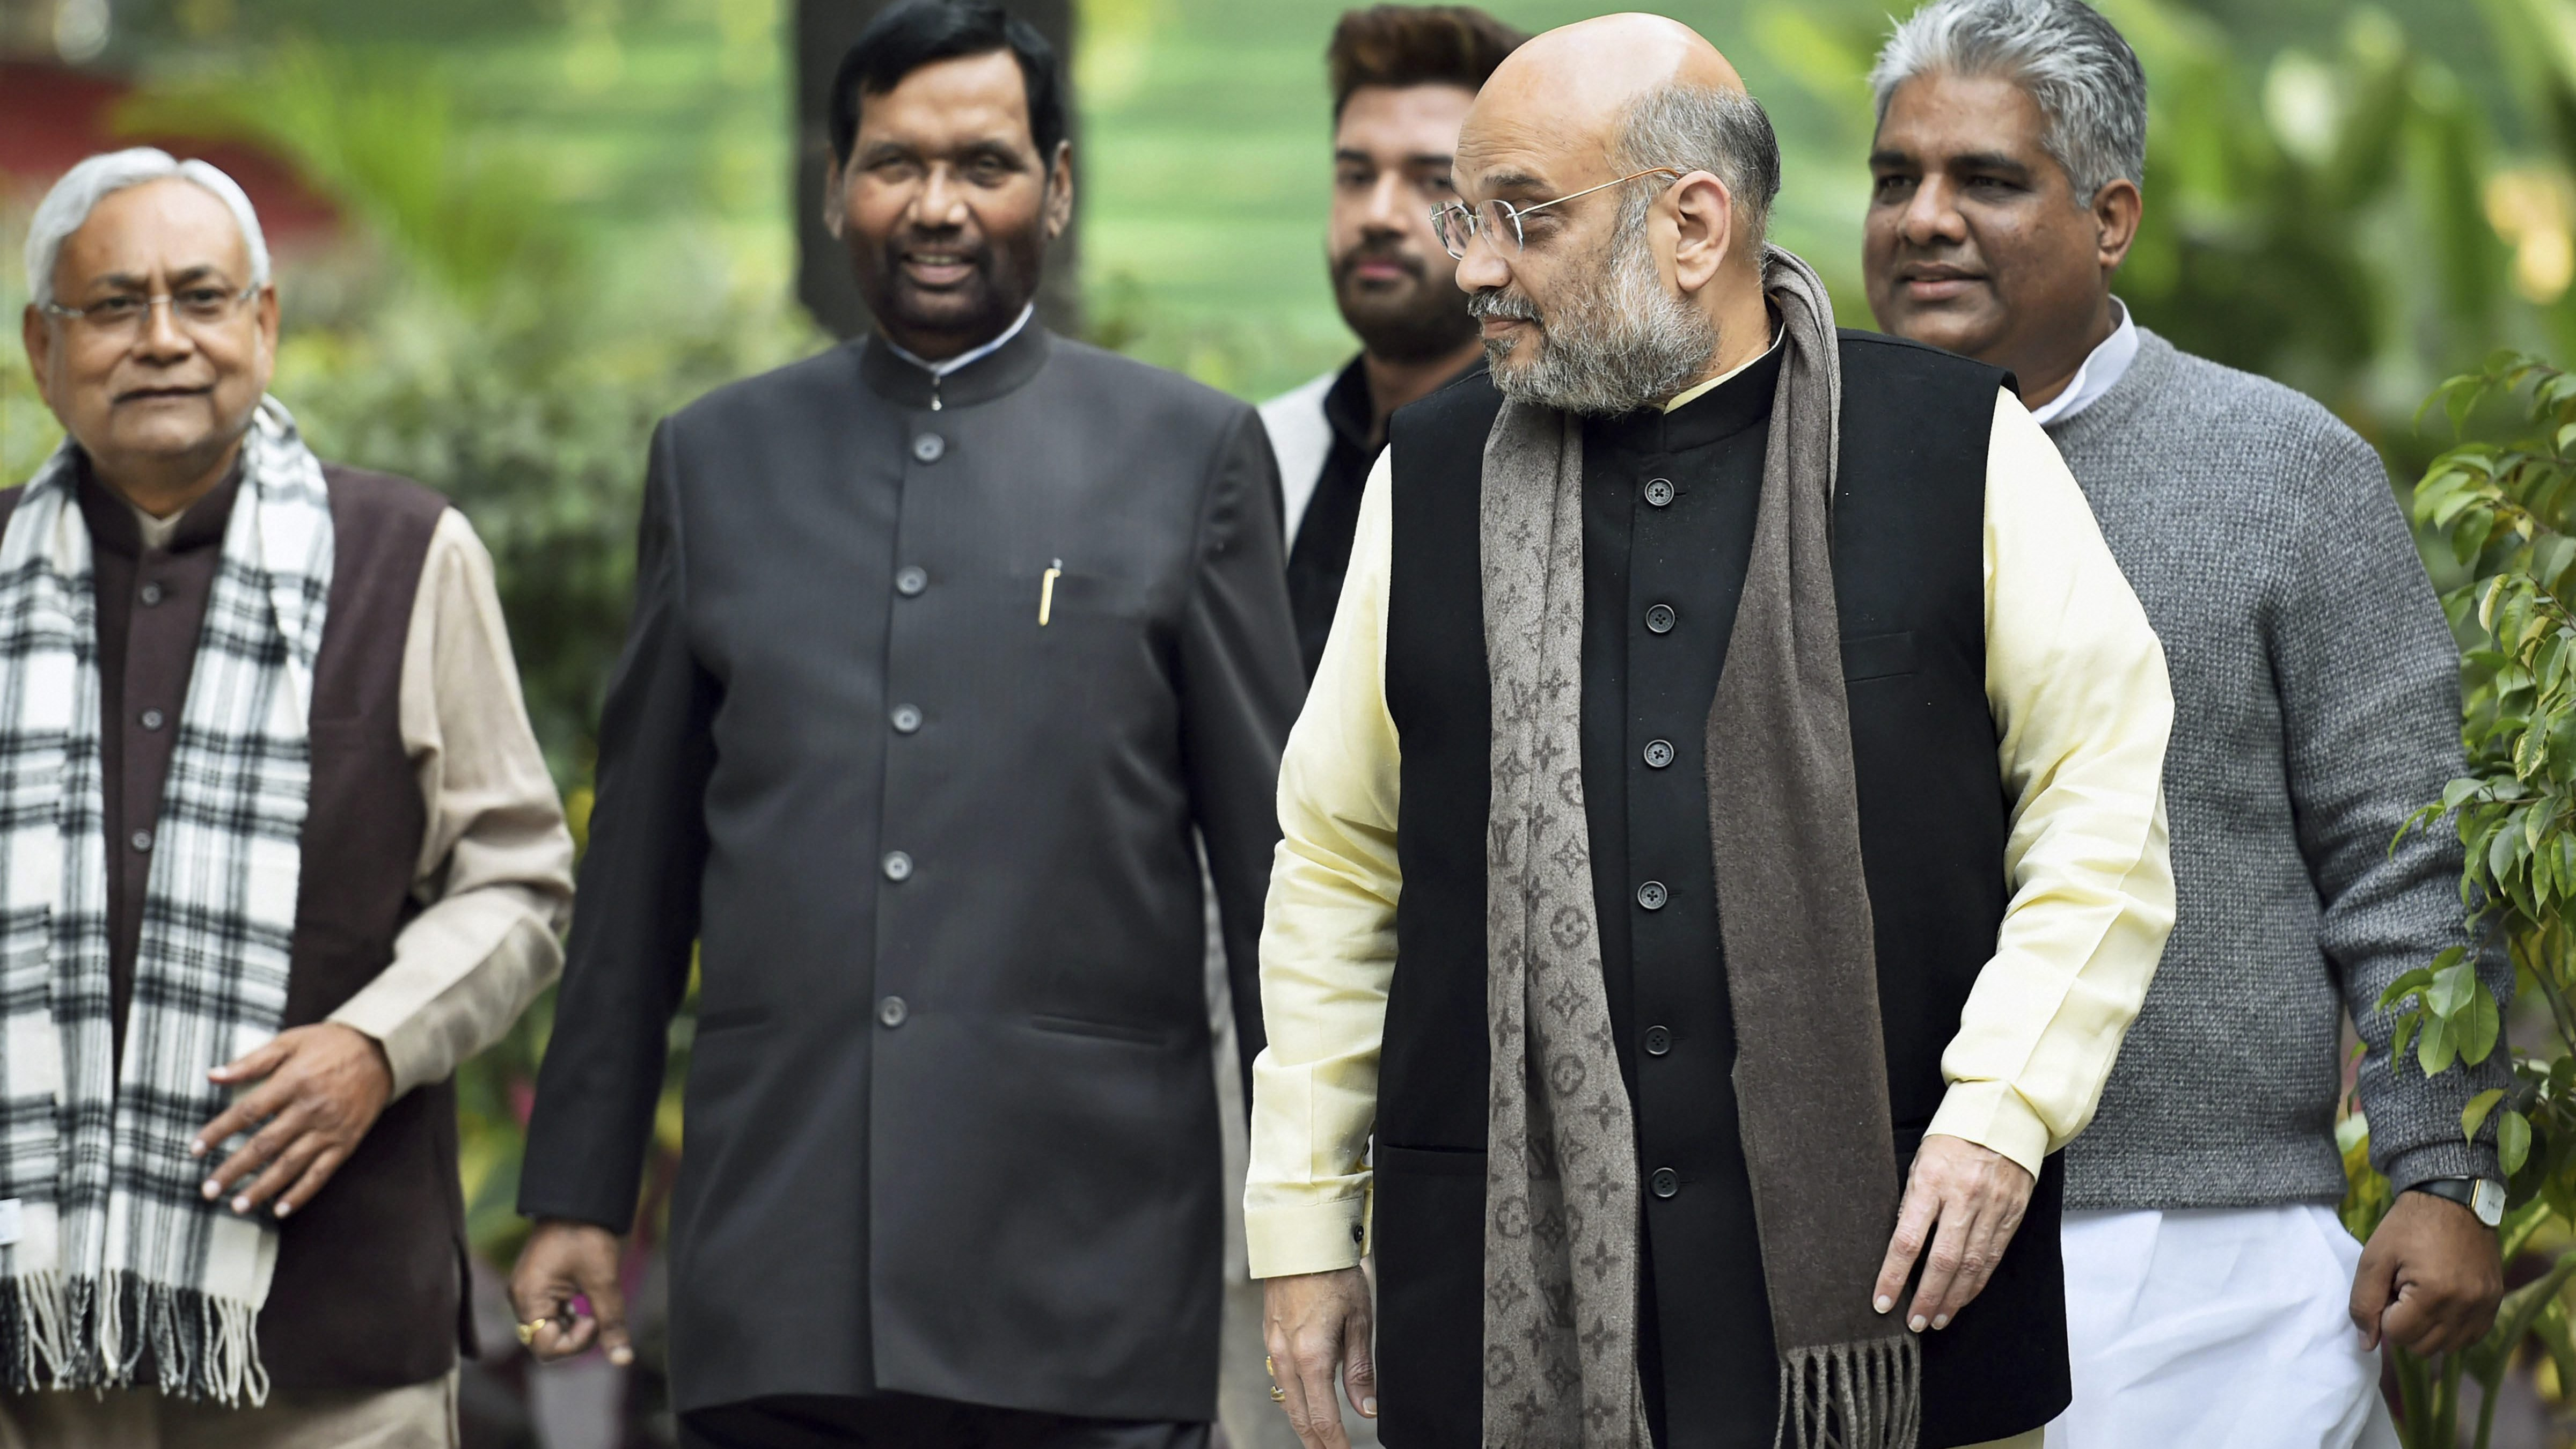 2019 Lok Sabha polls: the lone certainty is uncertainty